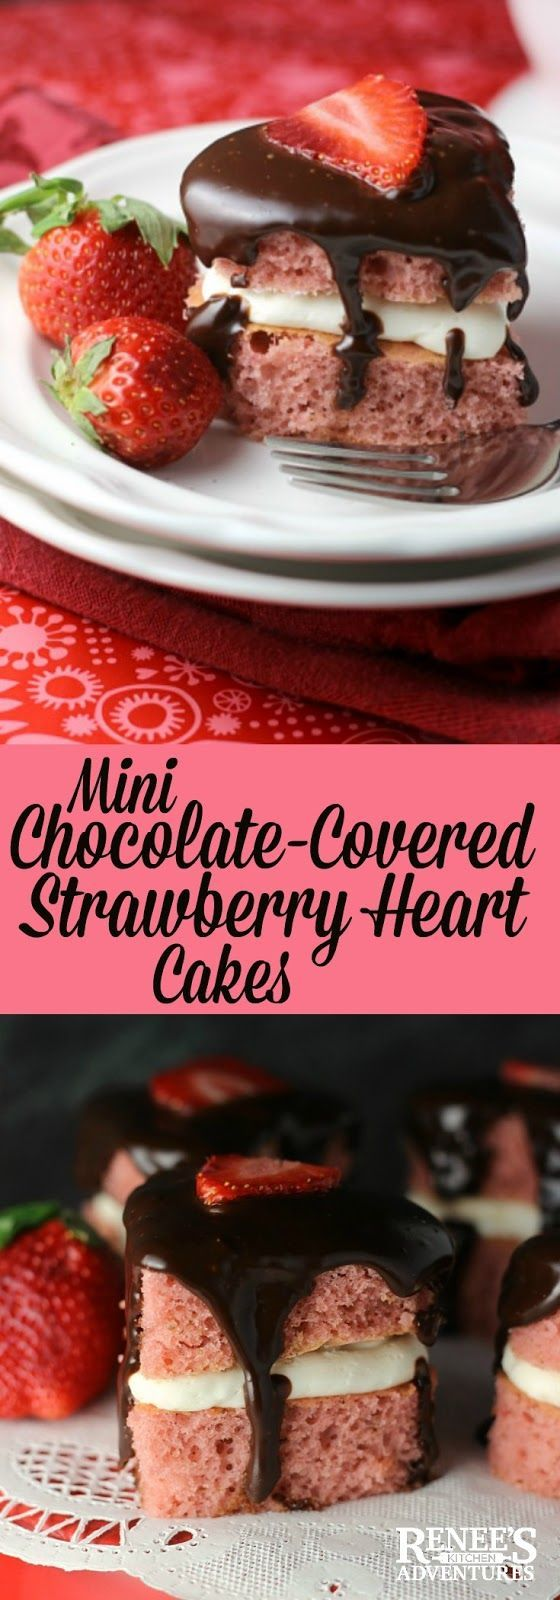 Mini pastel cheesecakes w/ chocolate heart toppers